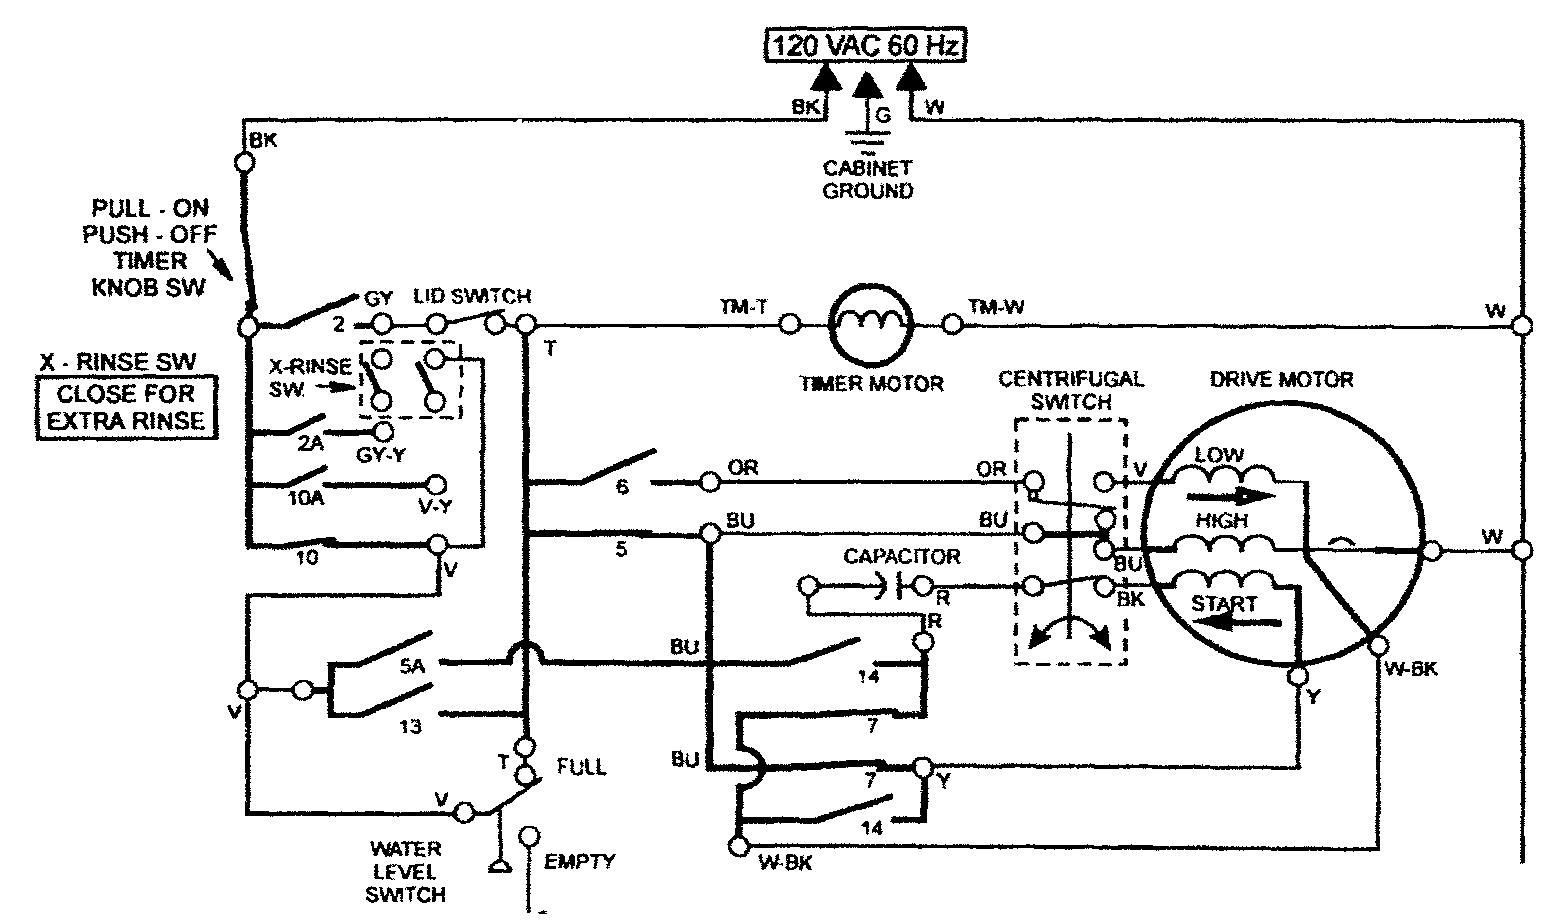 Appliance Course Module Five Figure 5 49 mat course module five sample page safety mat wiring diagram at webbmarketing.co